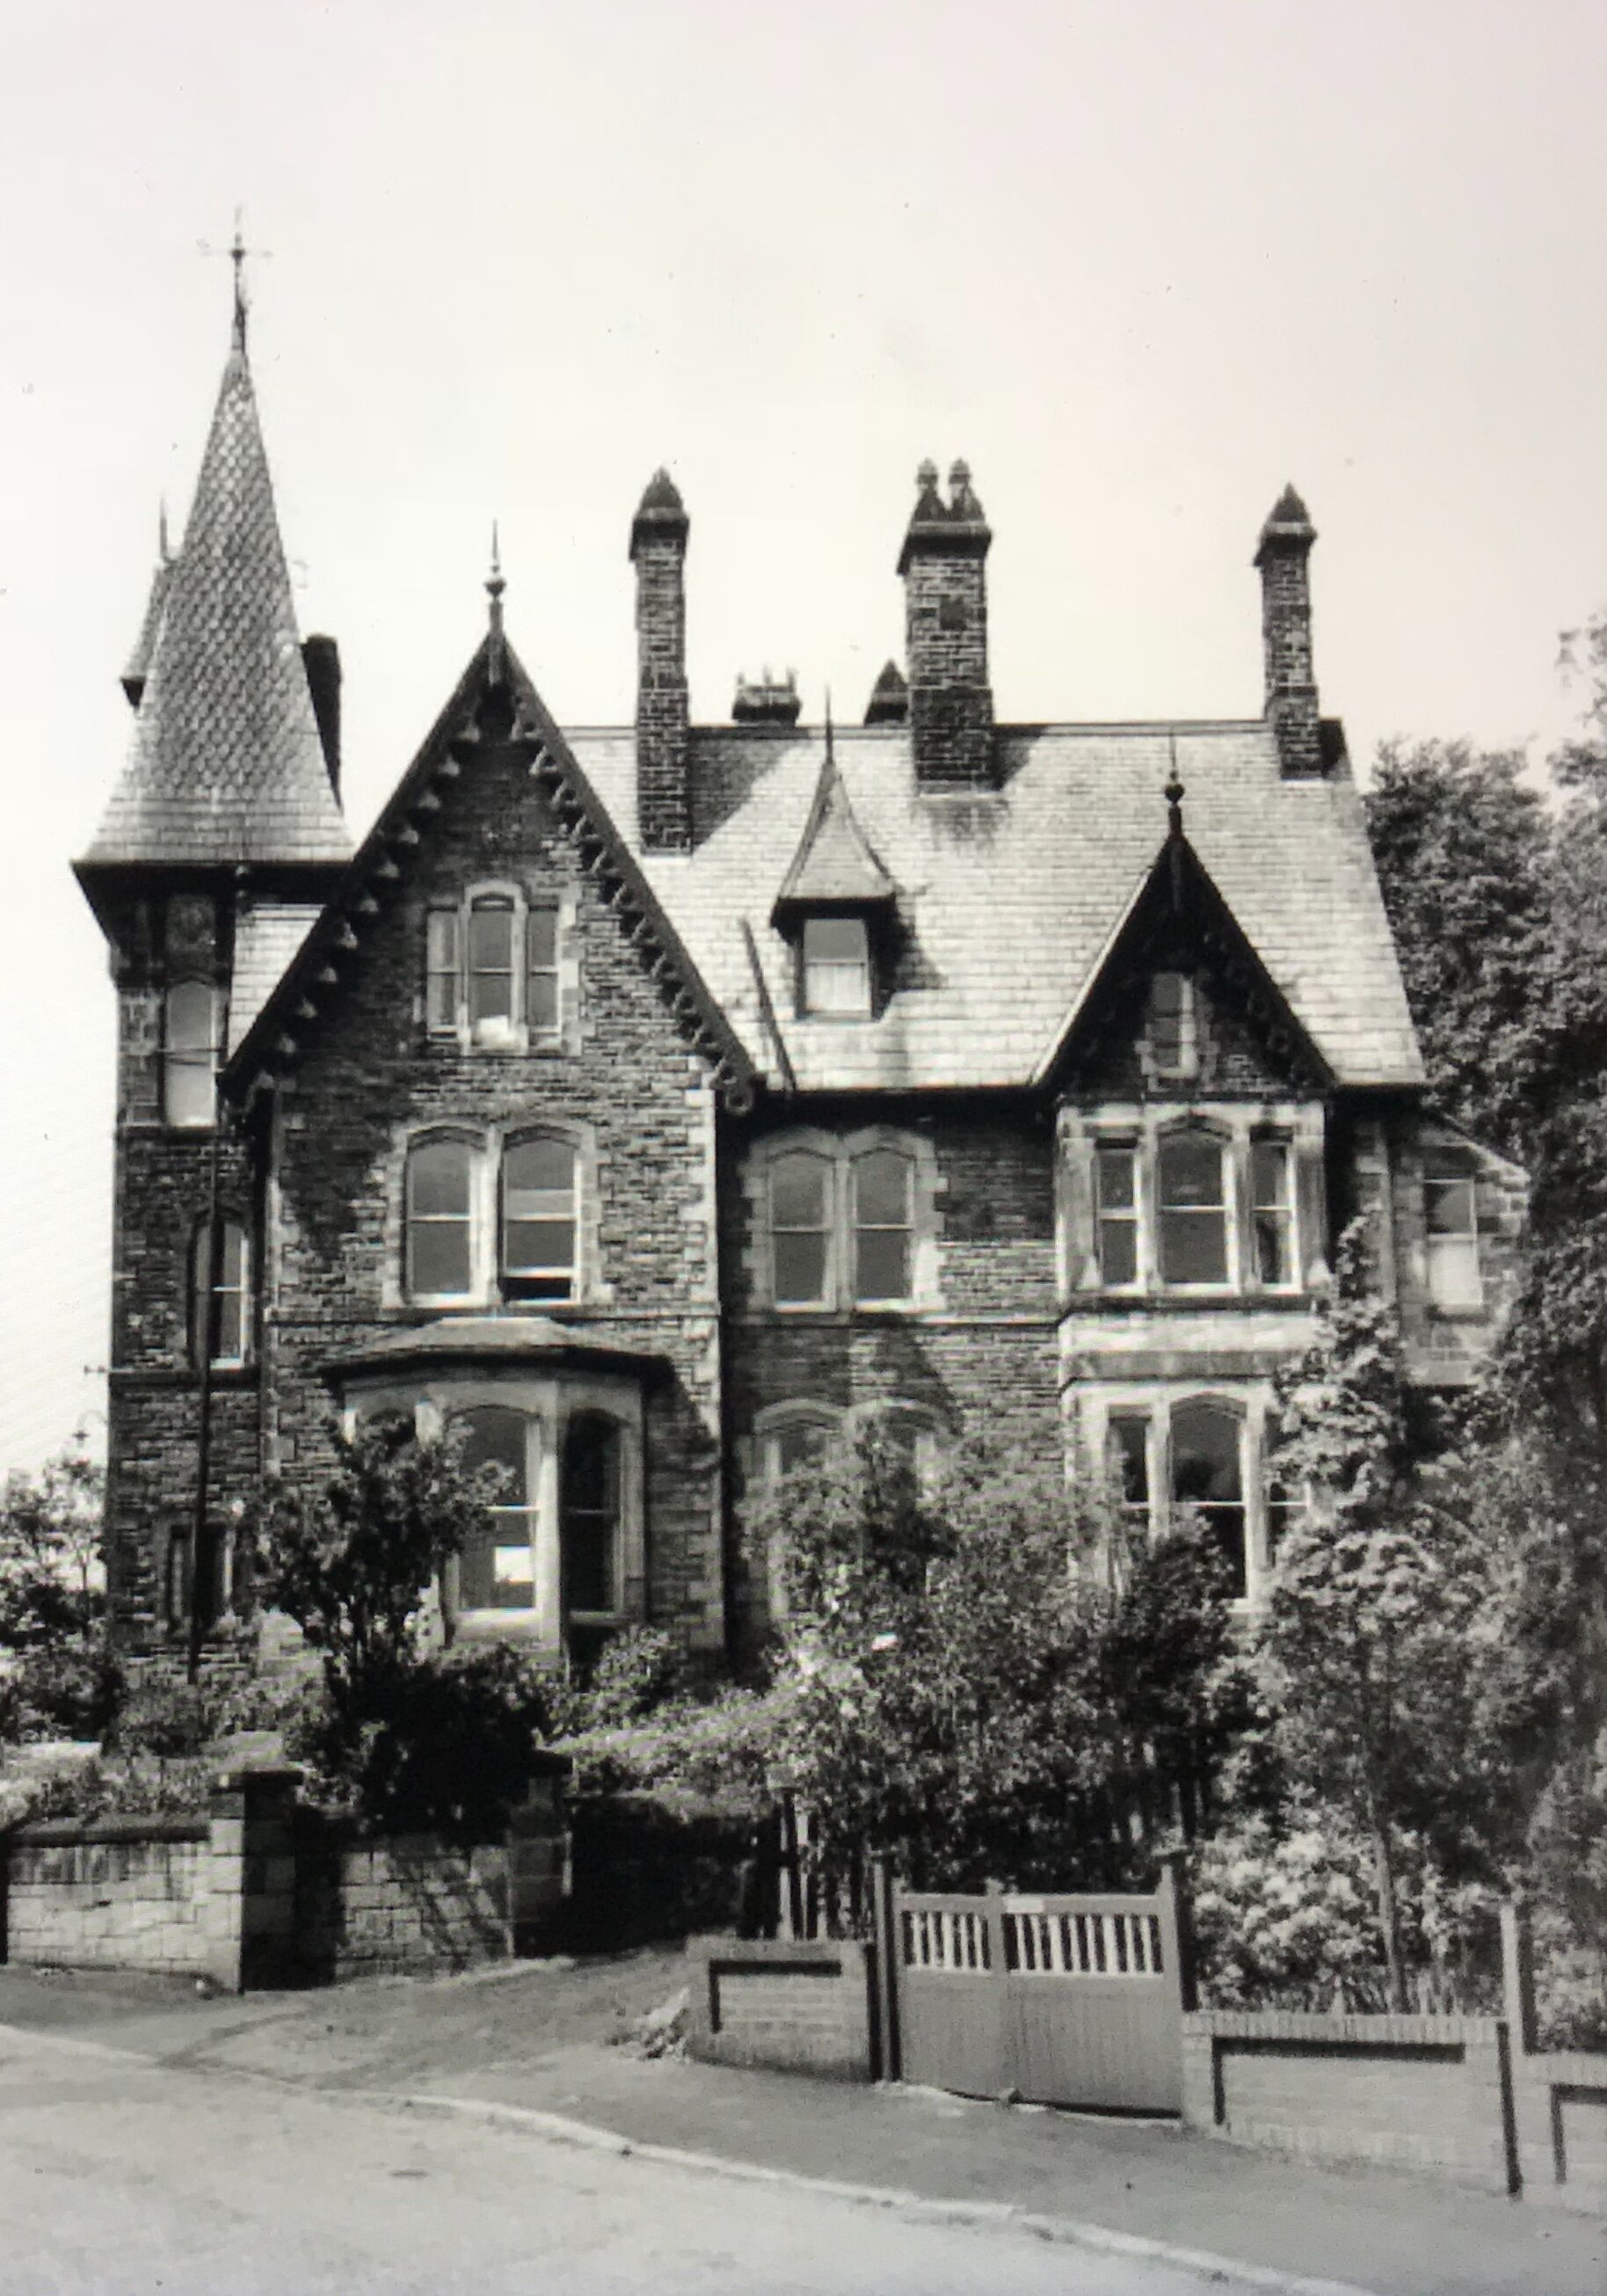 11  Weetwood Manor, formerly Lodge, circa 1960